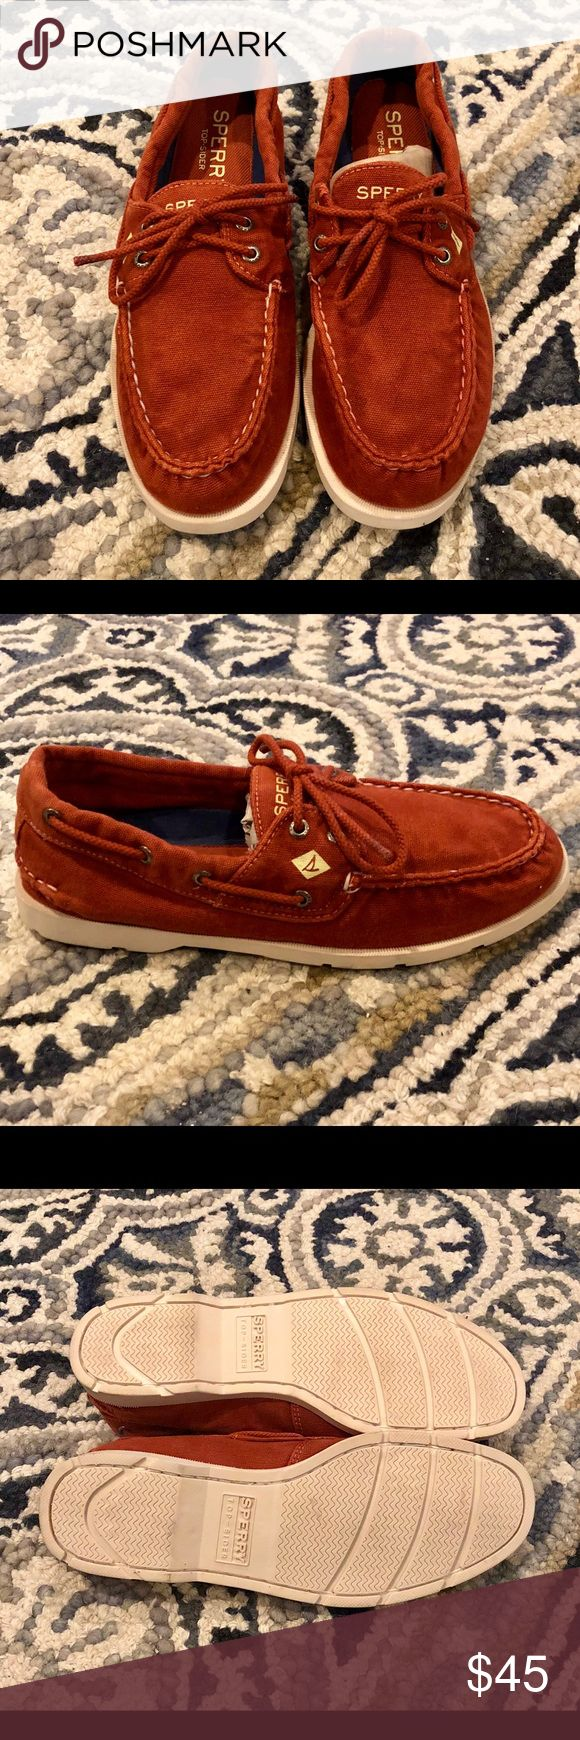 SPERRY leeward canvas boat shoes NEW Brand new Sperry leeward canvas boat shoes! Redish - orange color. Size 10.5 Mens   Feel free to ask any questions! Sperry Shoes Boat Shoes